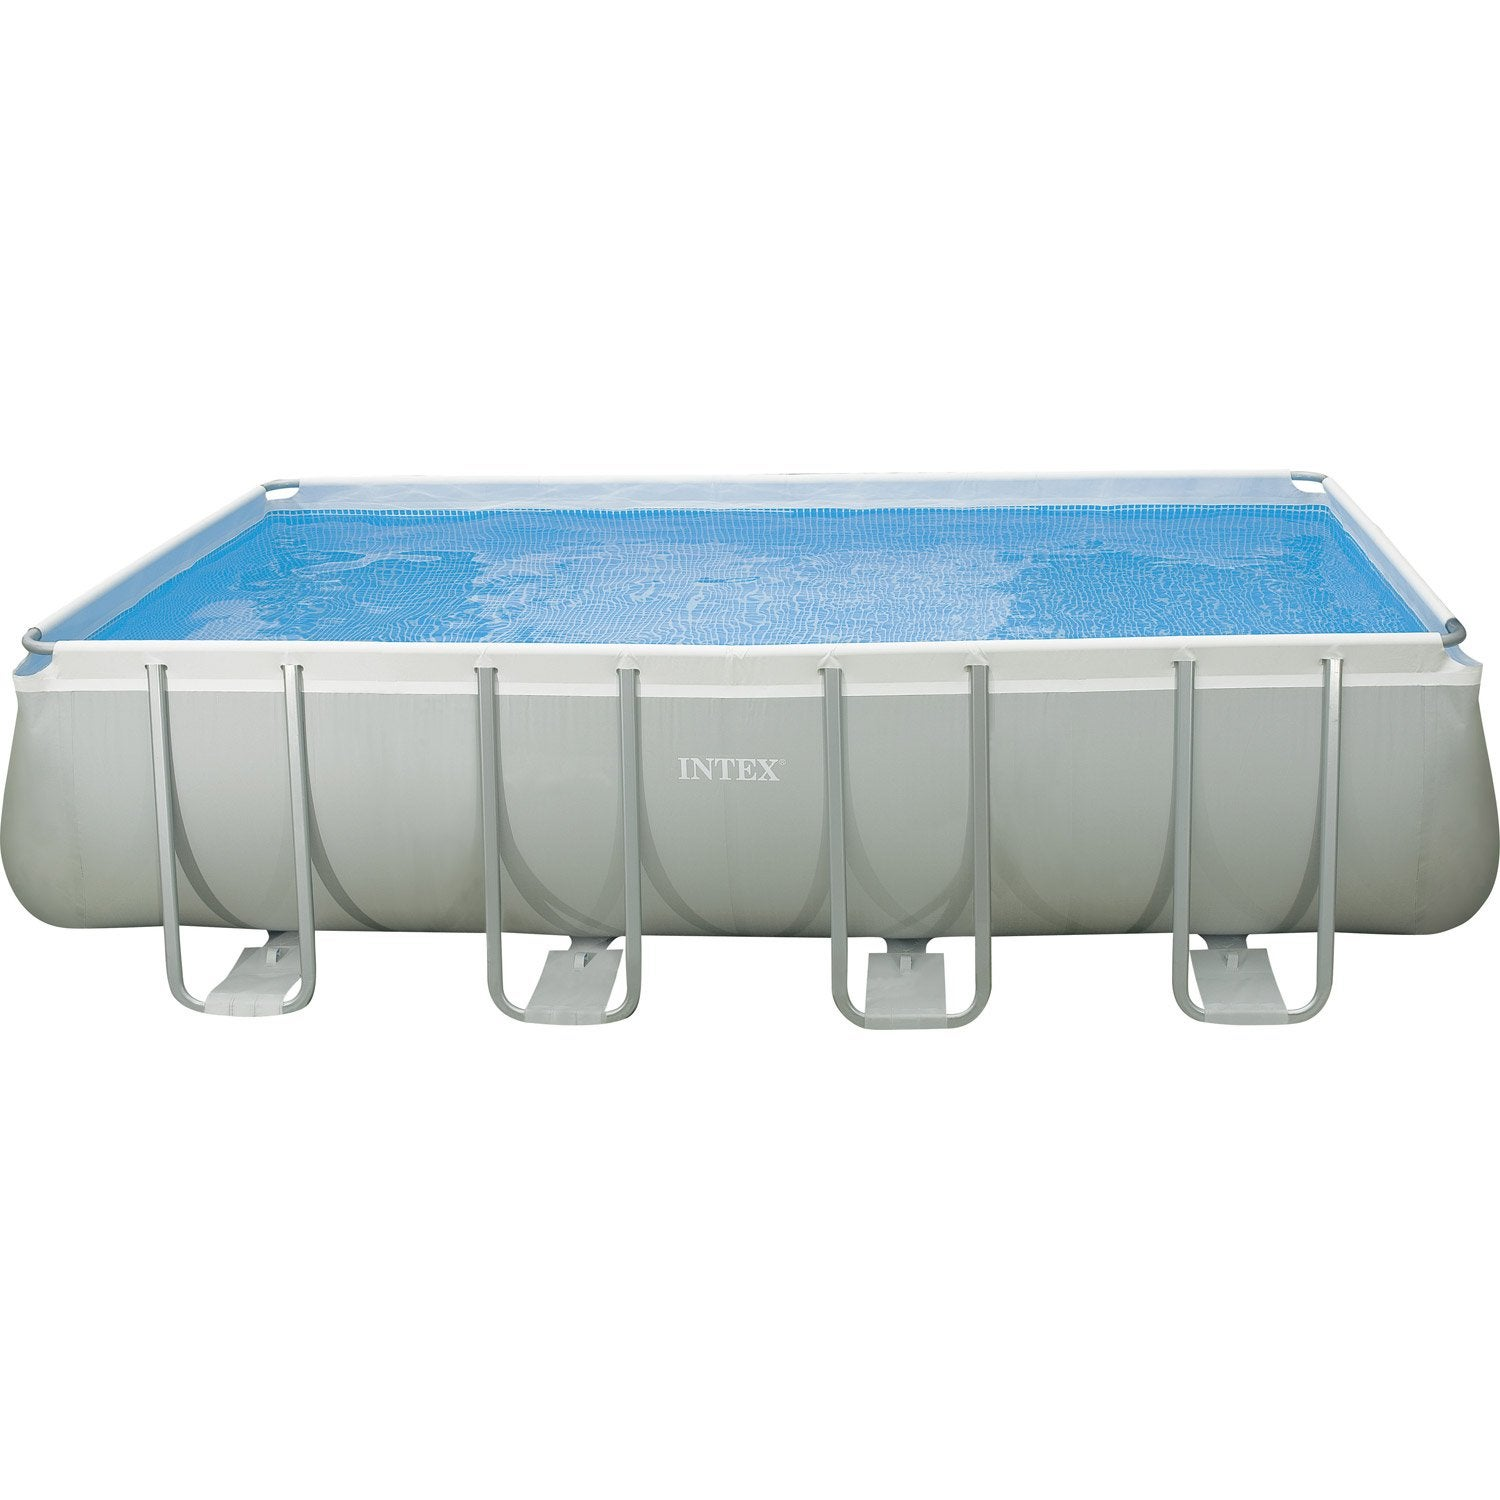 Piscine hors sol autoportante tubulaire intex l x l for Robot piscine hors sol leroy merlin